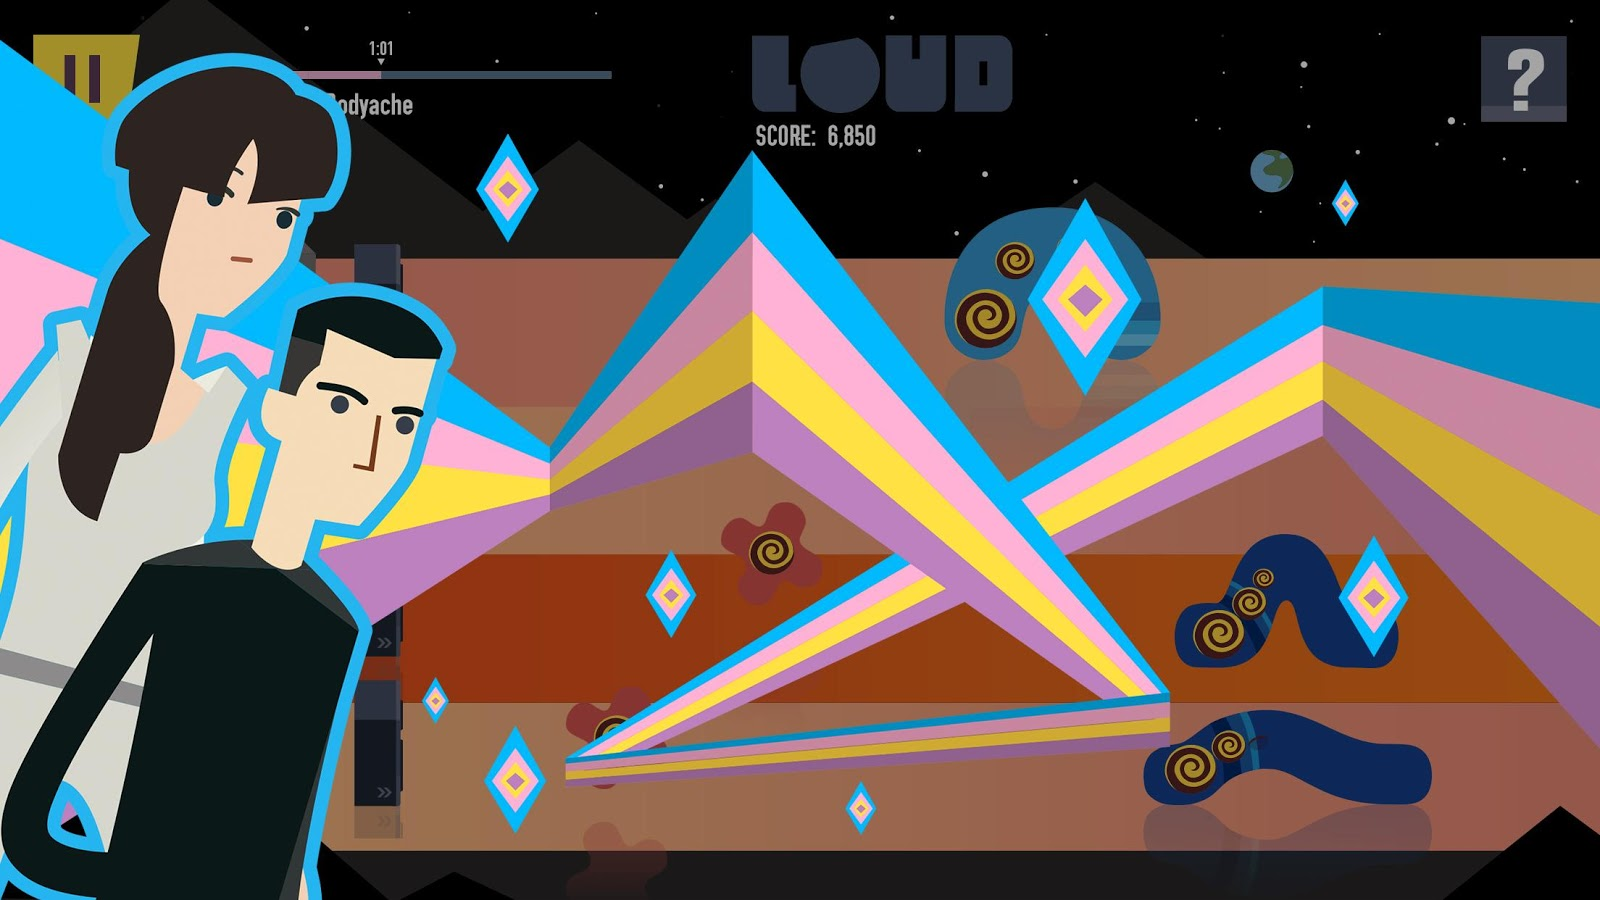 LOUD on Planet X Screenshot 4